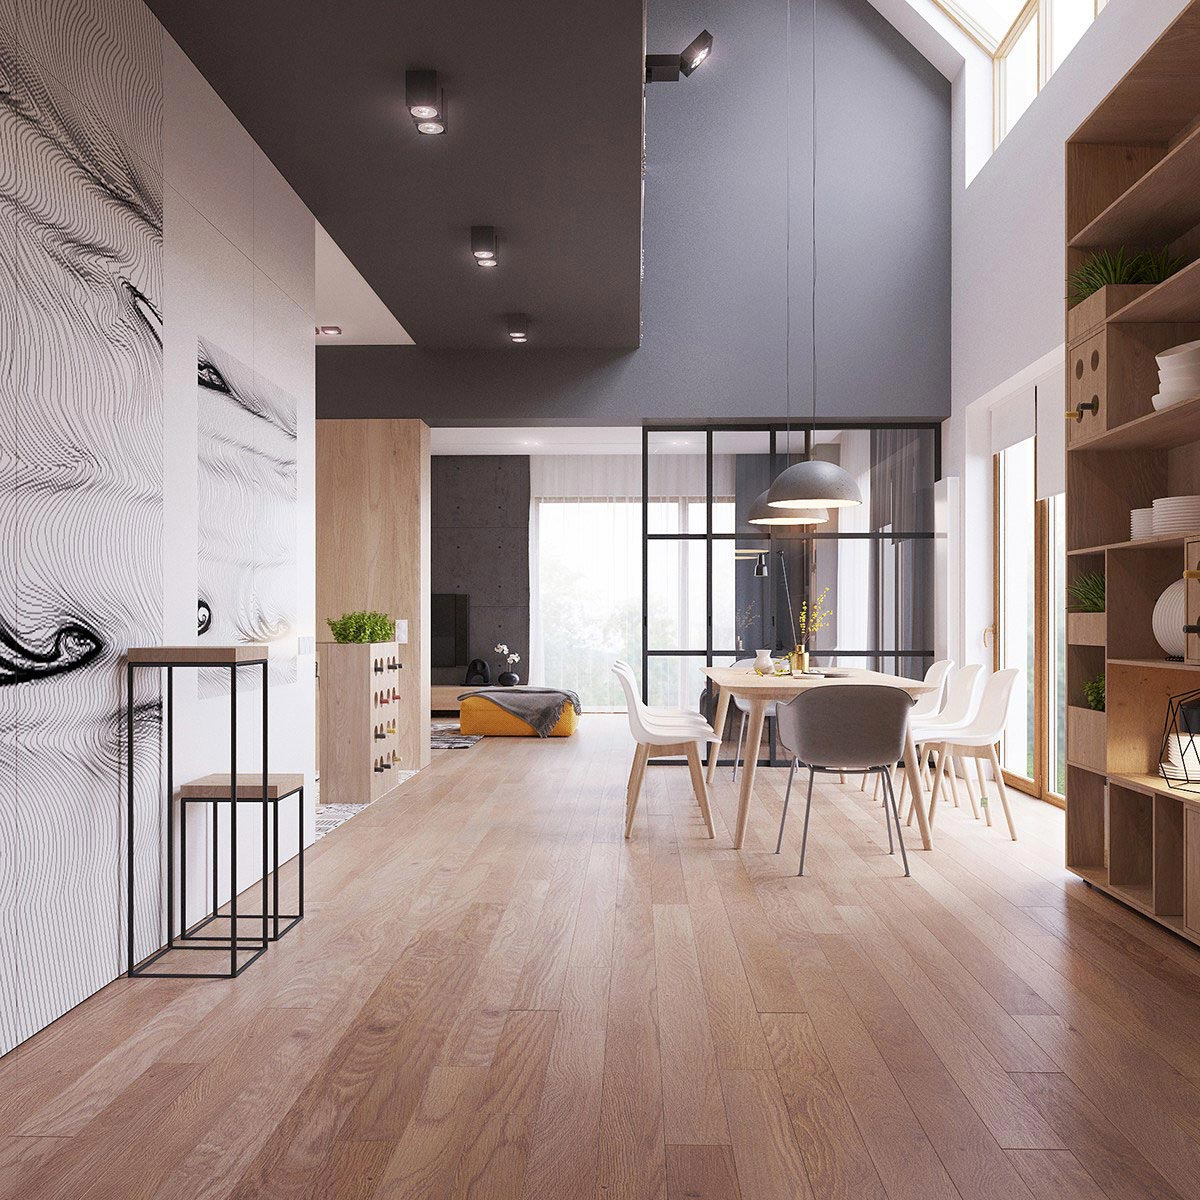 Two storey home contemporary scandinavian style young family 06